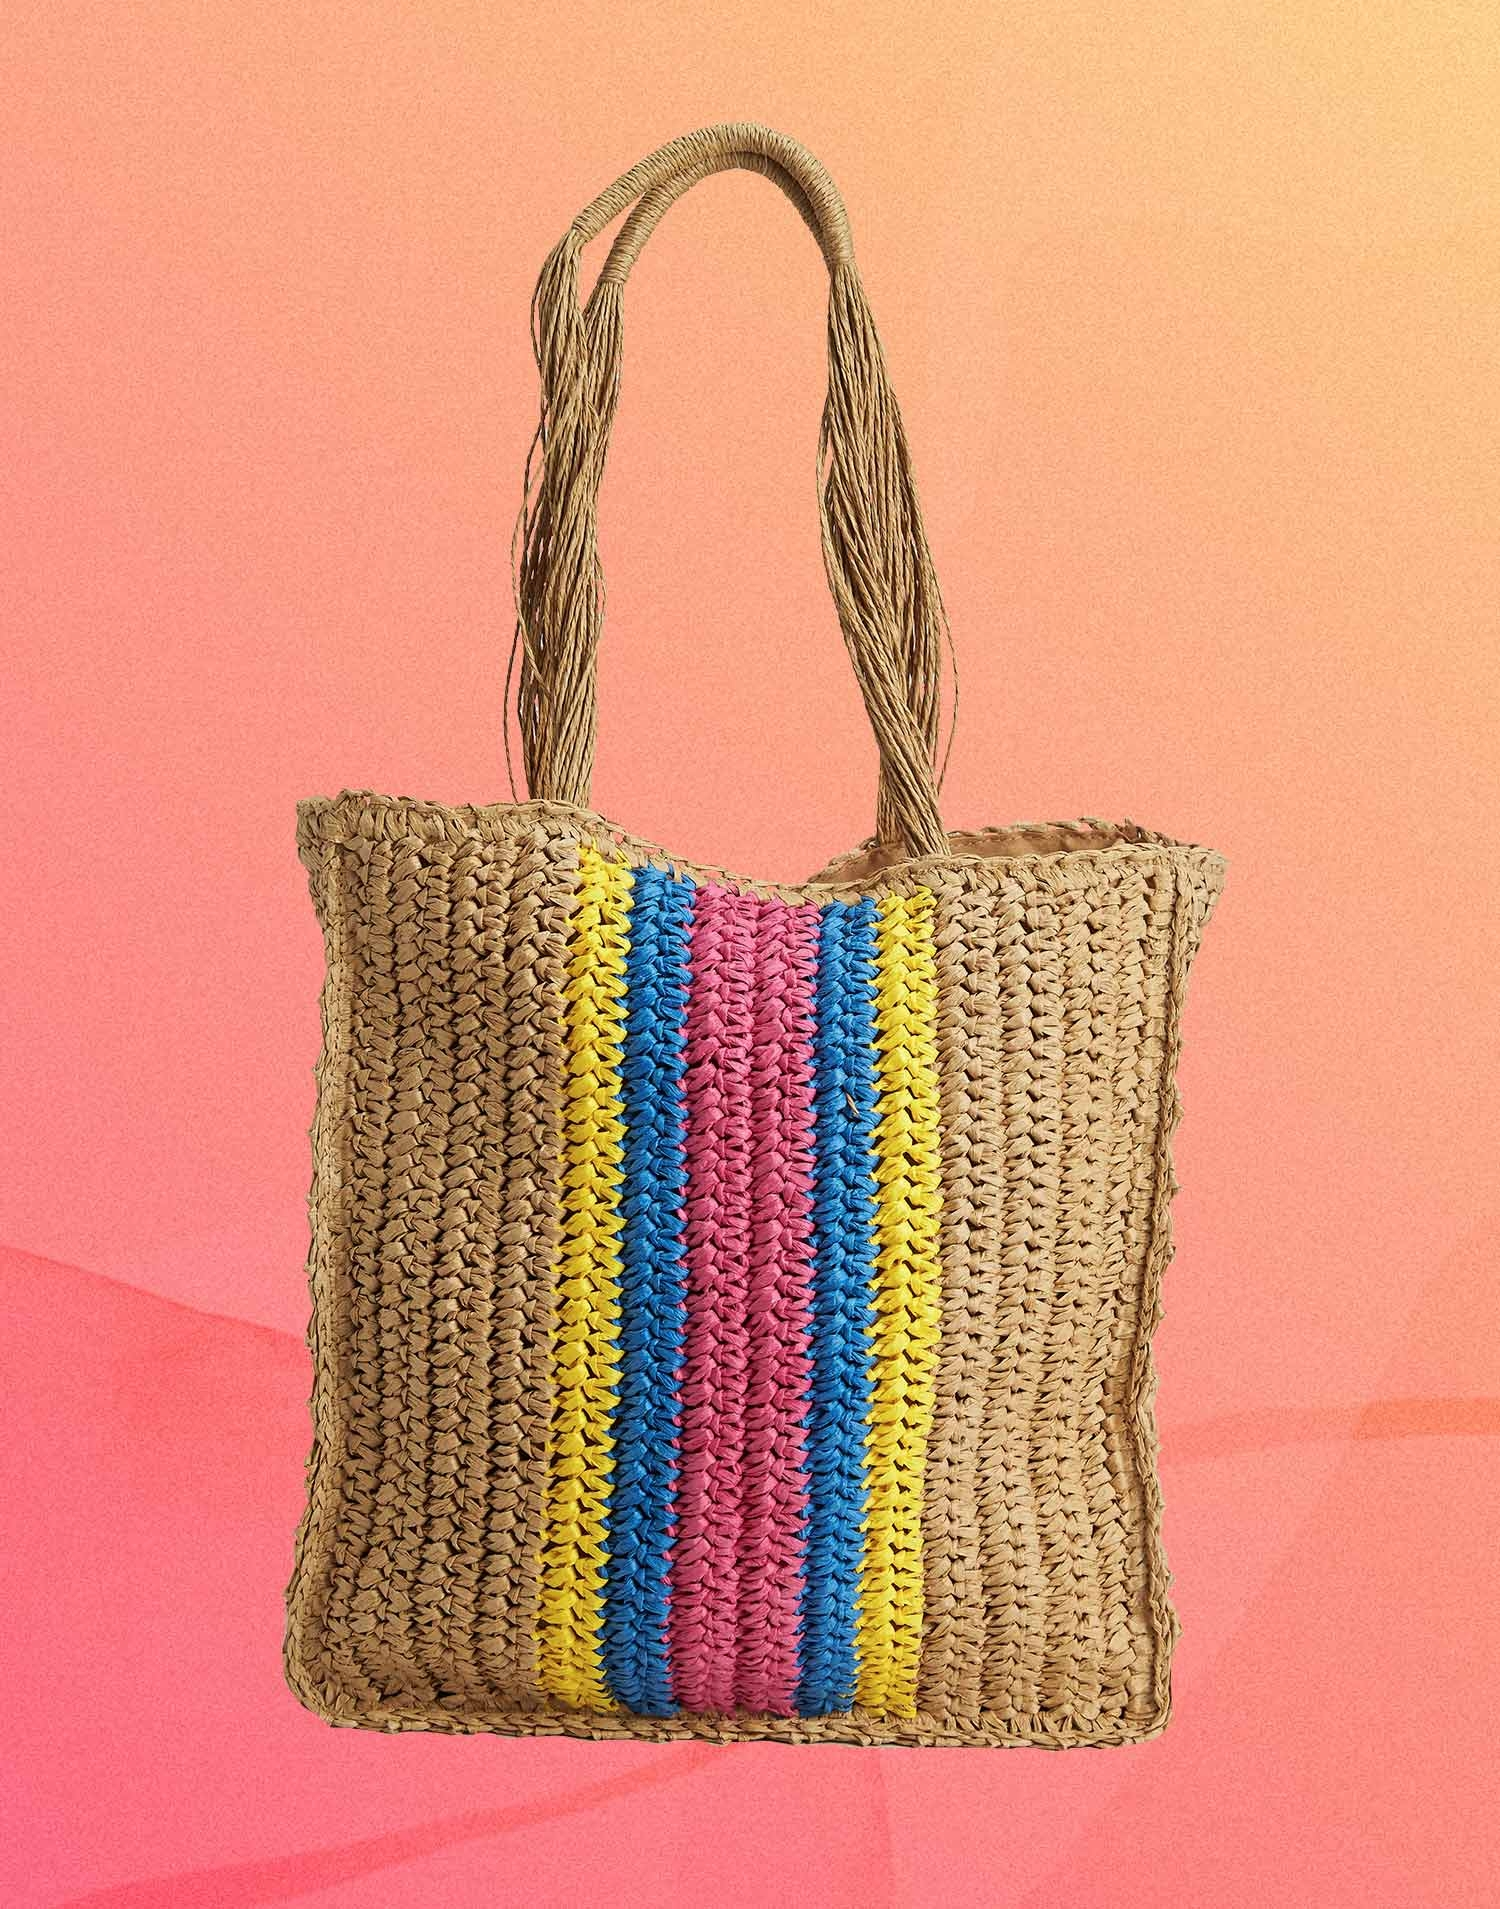 Paper bag with multicolor trimming